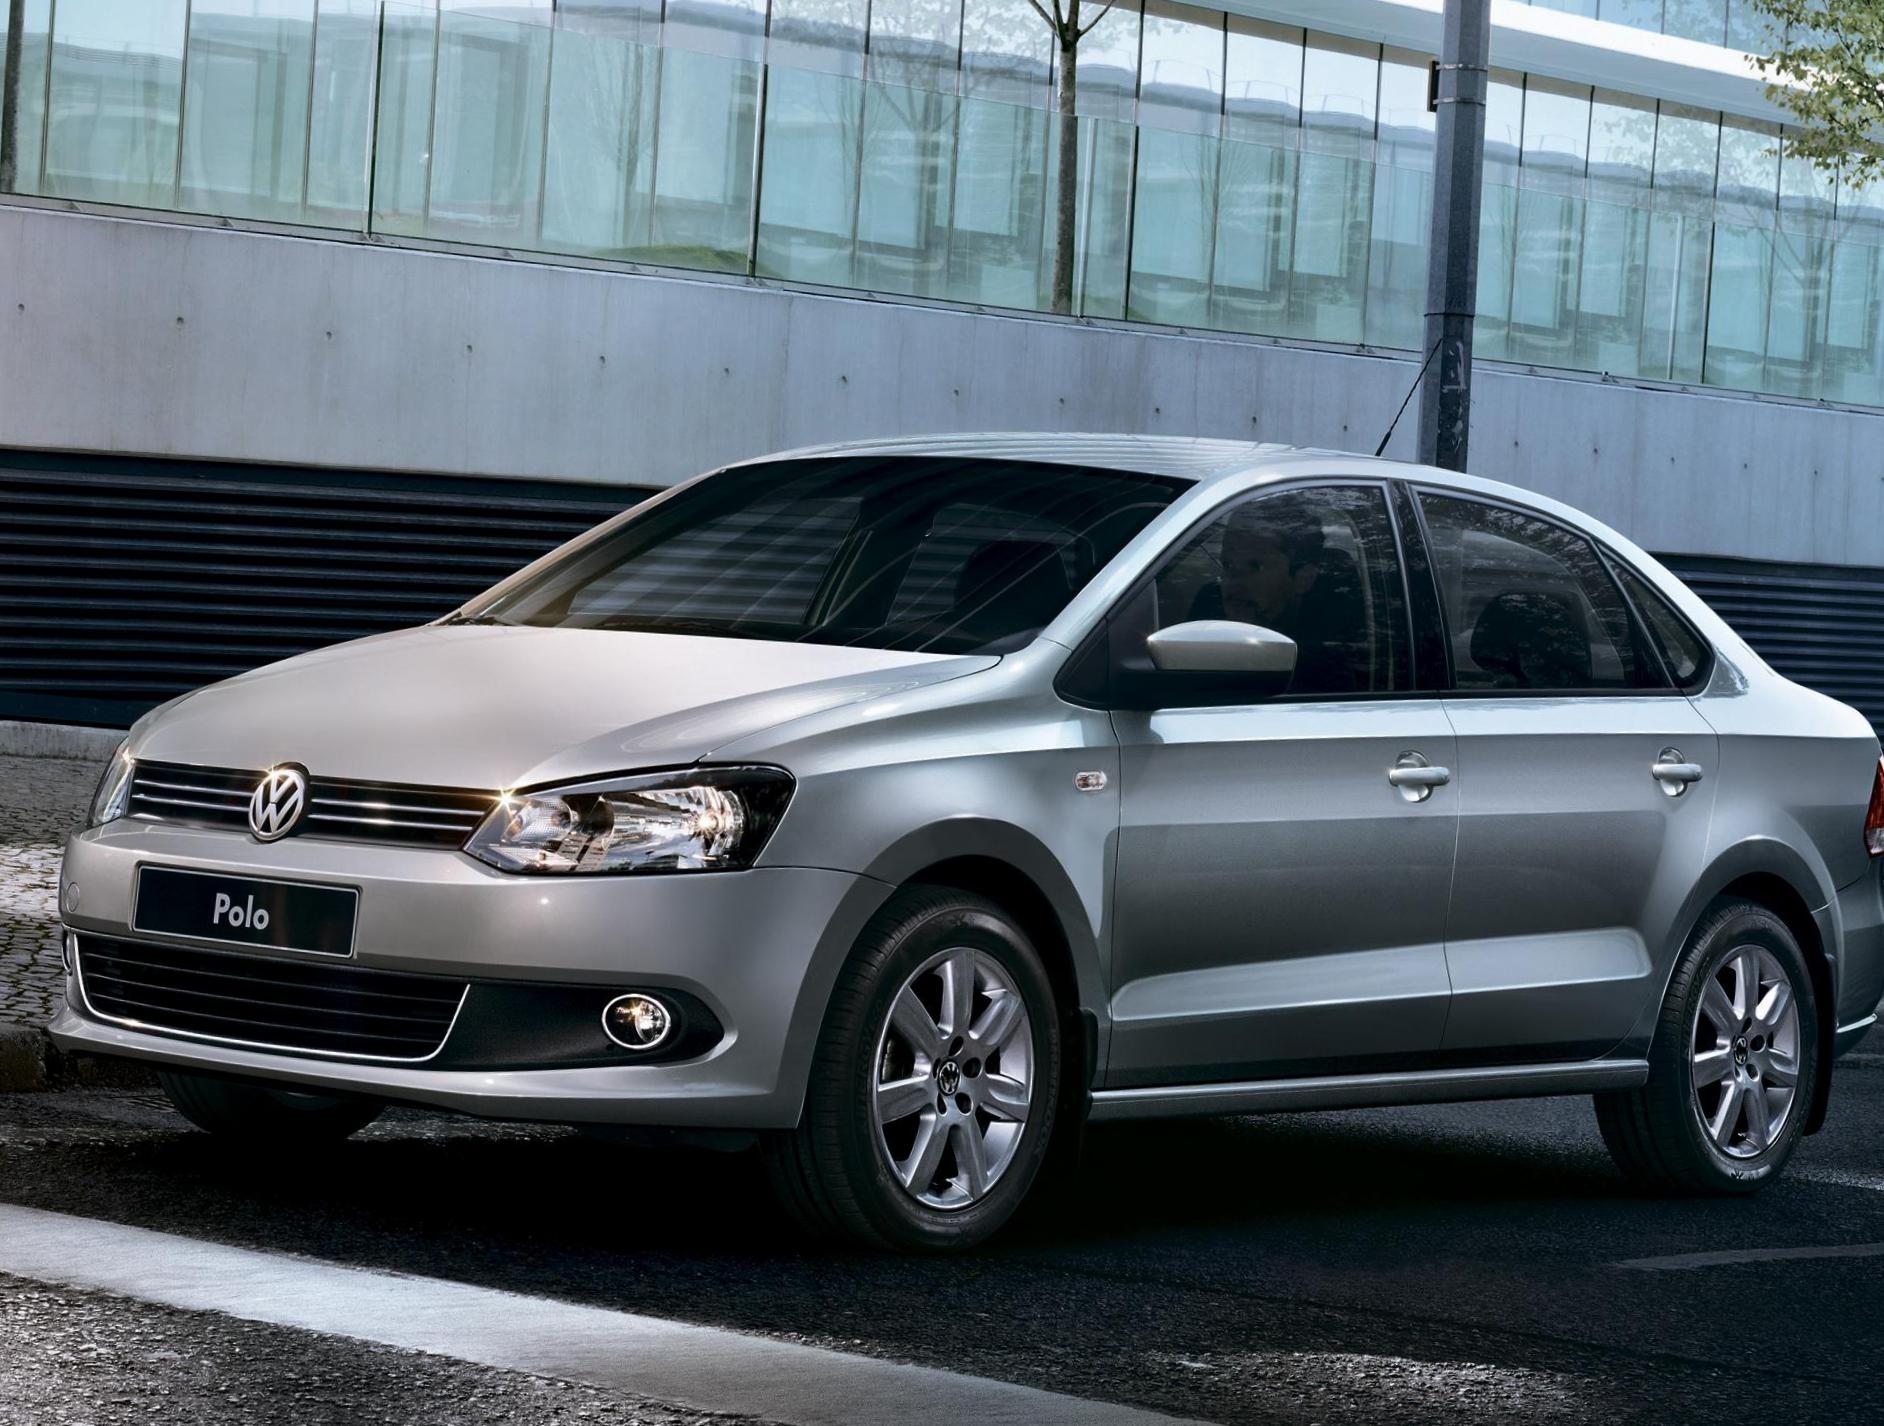 Volkswagen Polo Sedan for sale sedan